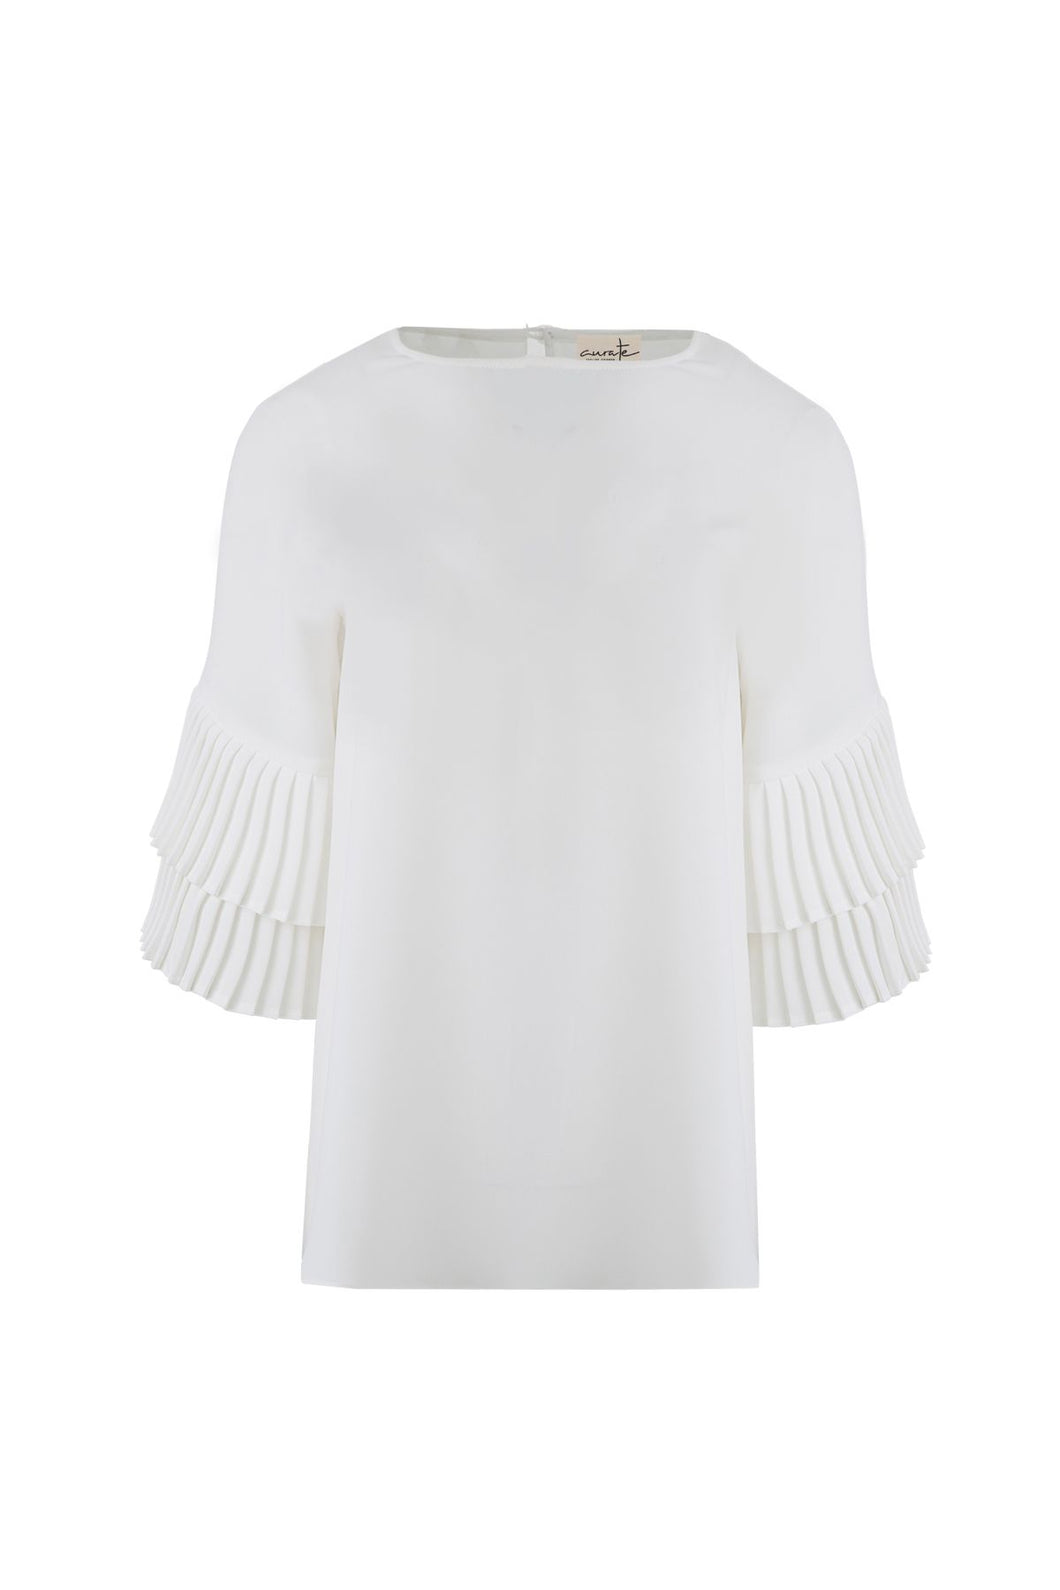 CURATE by Trelise Cooper - Take Crepe Top in Ivory White